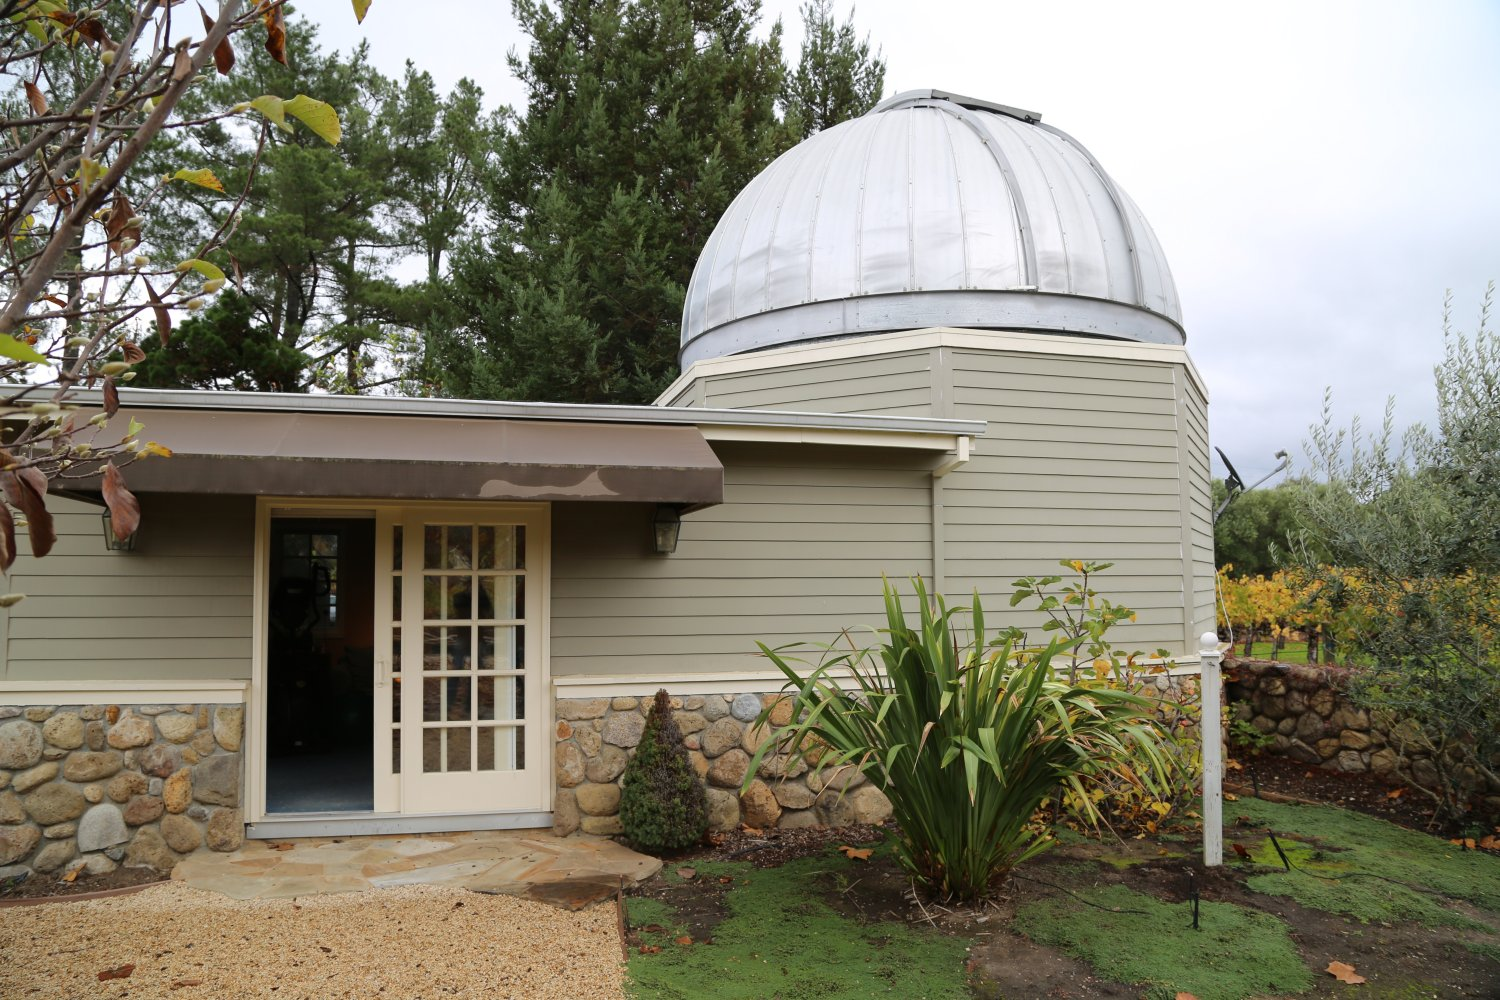 jaffe-estate-observatory